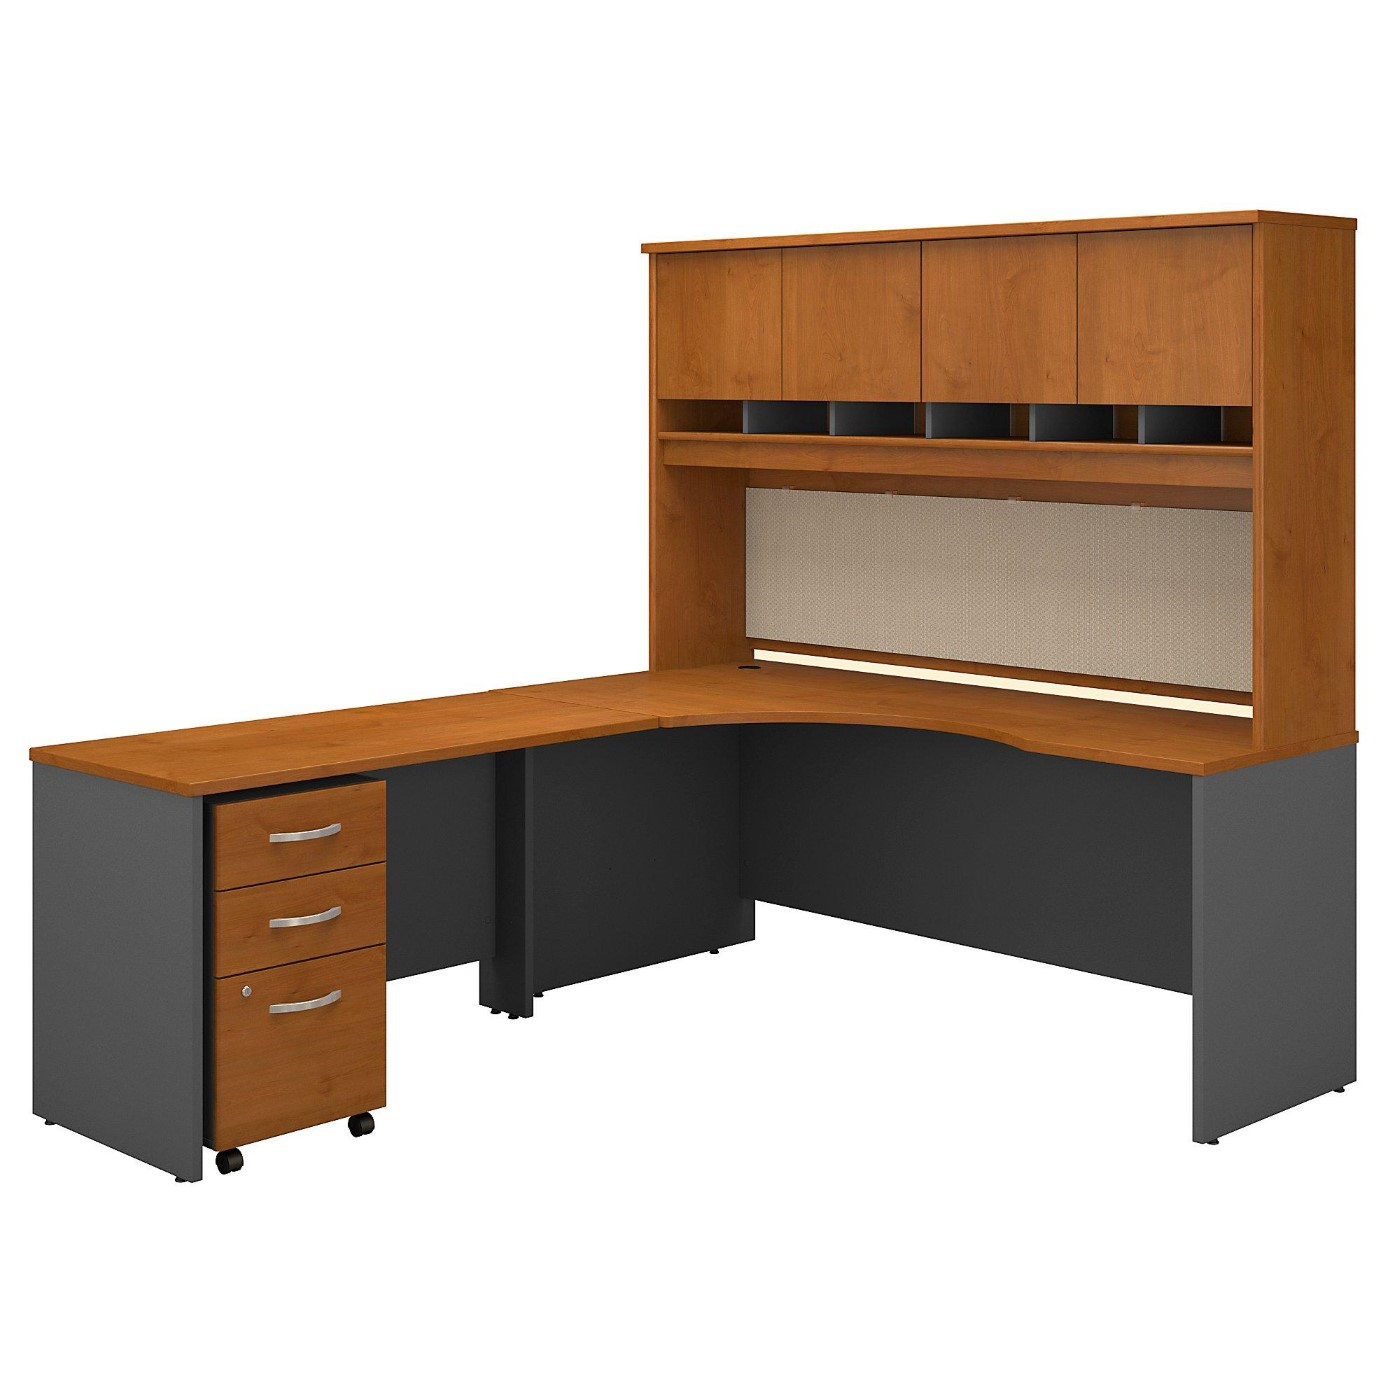 <font color=#c60><b>BUSH BUSINESS FURNITURE SERIES C 72W RIGHT HANDED CORNER DESK WITH HUTCH AND MOBILE FILE CABINET. FREE SHIPPING</font></b>